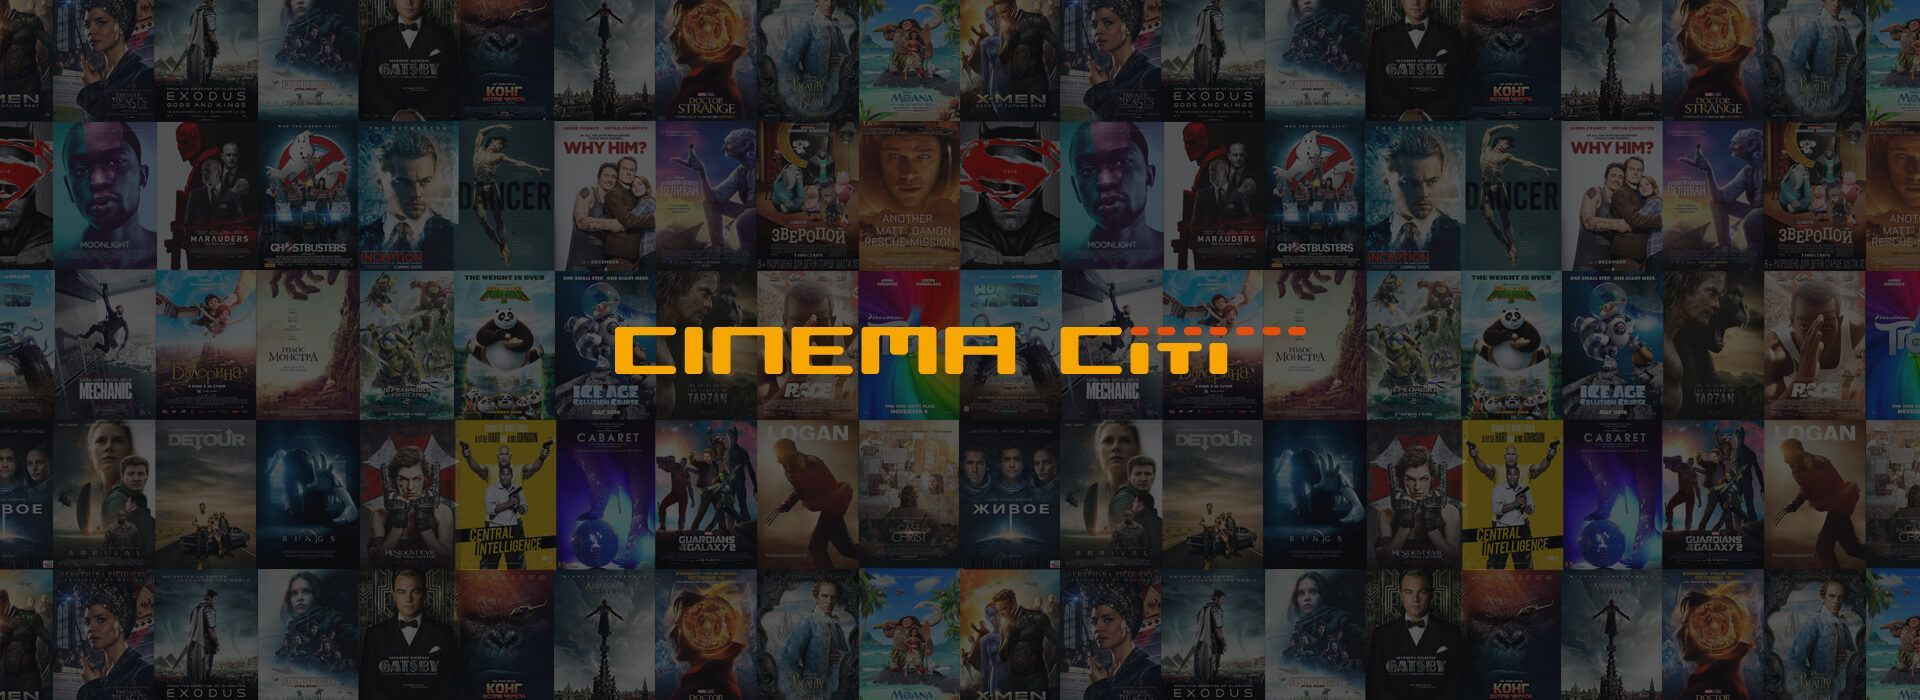 Cinema Citi network website